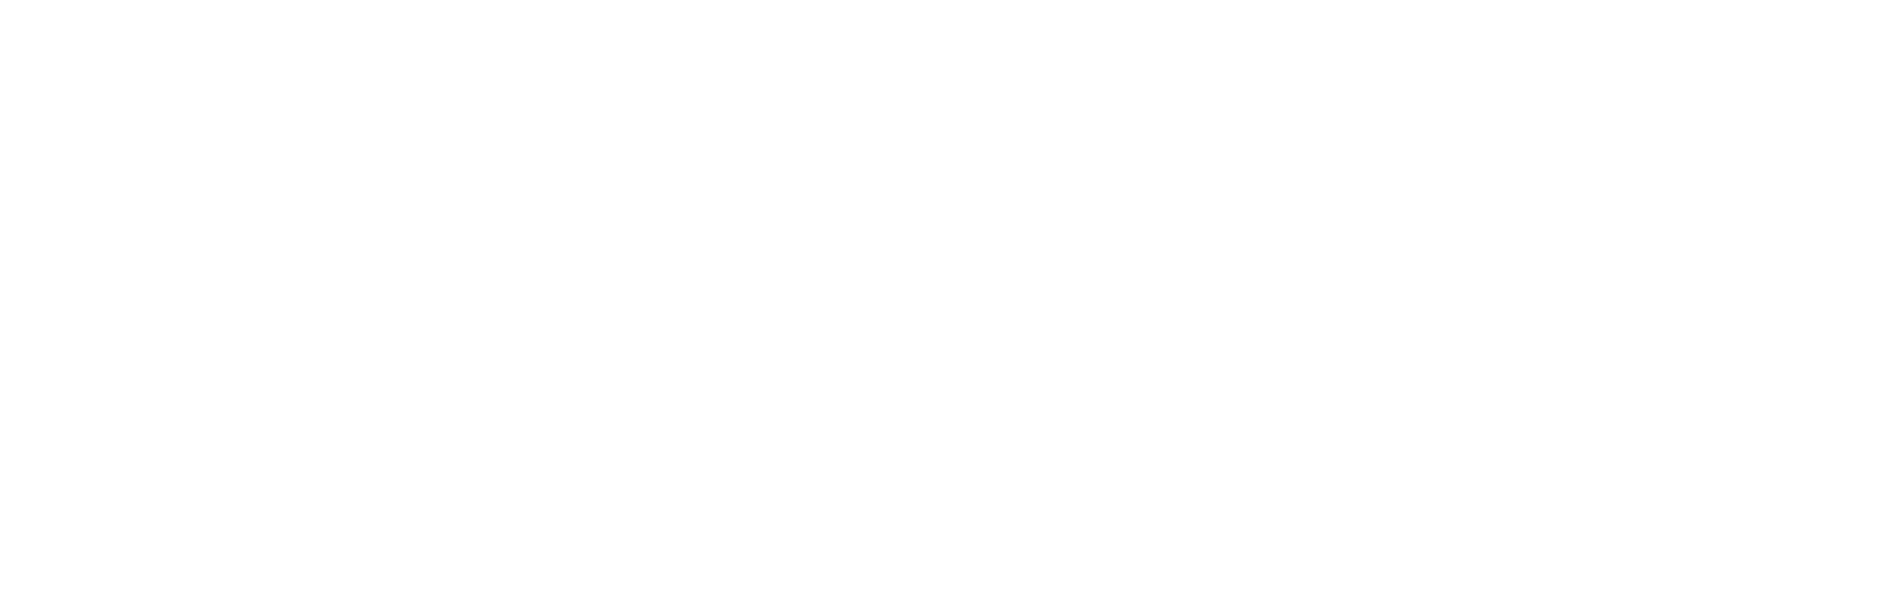 Georgia Technology Summit